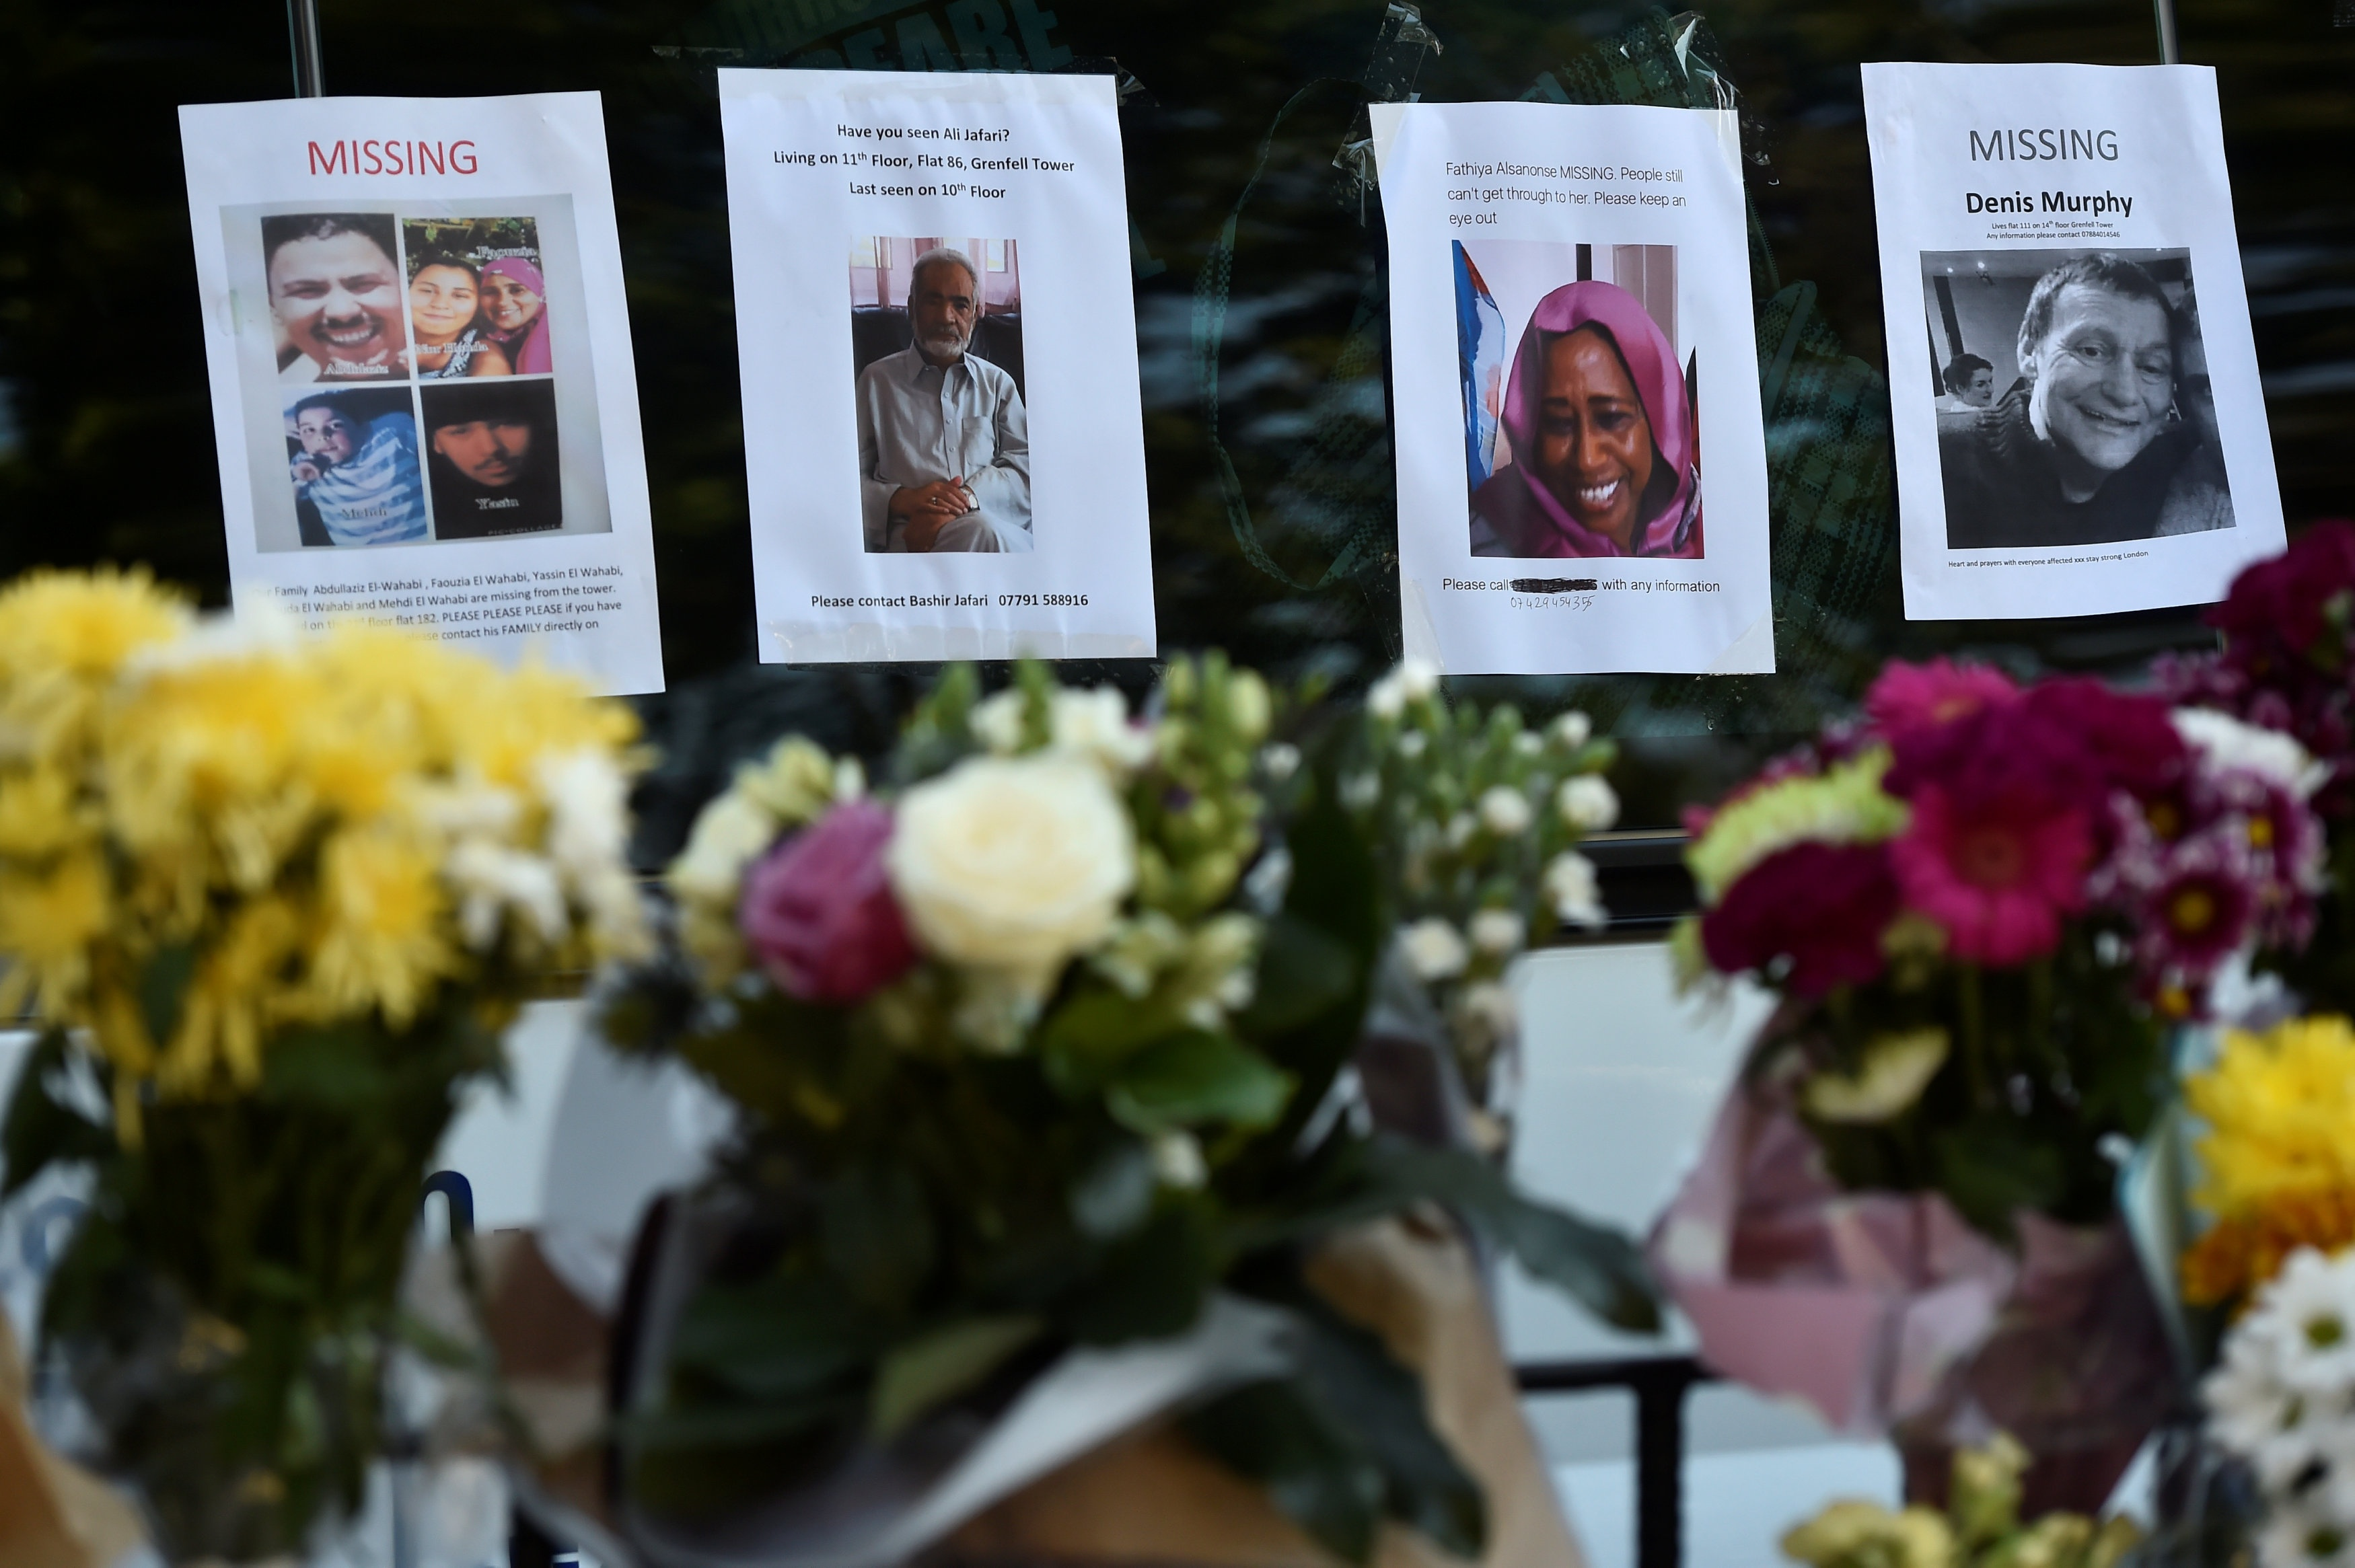 Homemade posters appealing for information on people missing since the Grenfell apartment tower block caught fire are seen behind flowers in London on June 17. Reuters